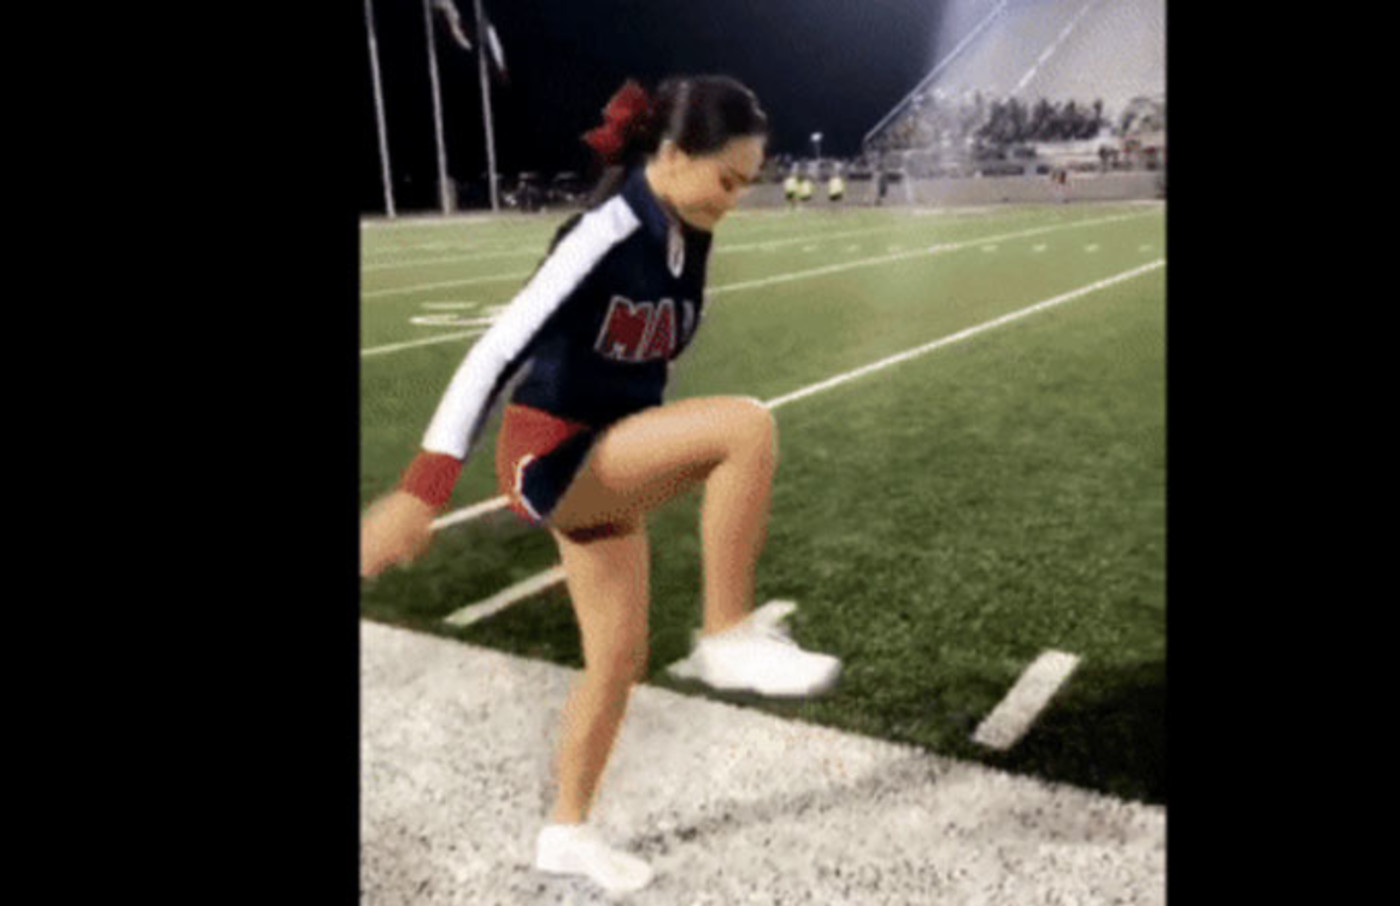 A cheerleader steps on an invisible box.